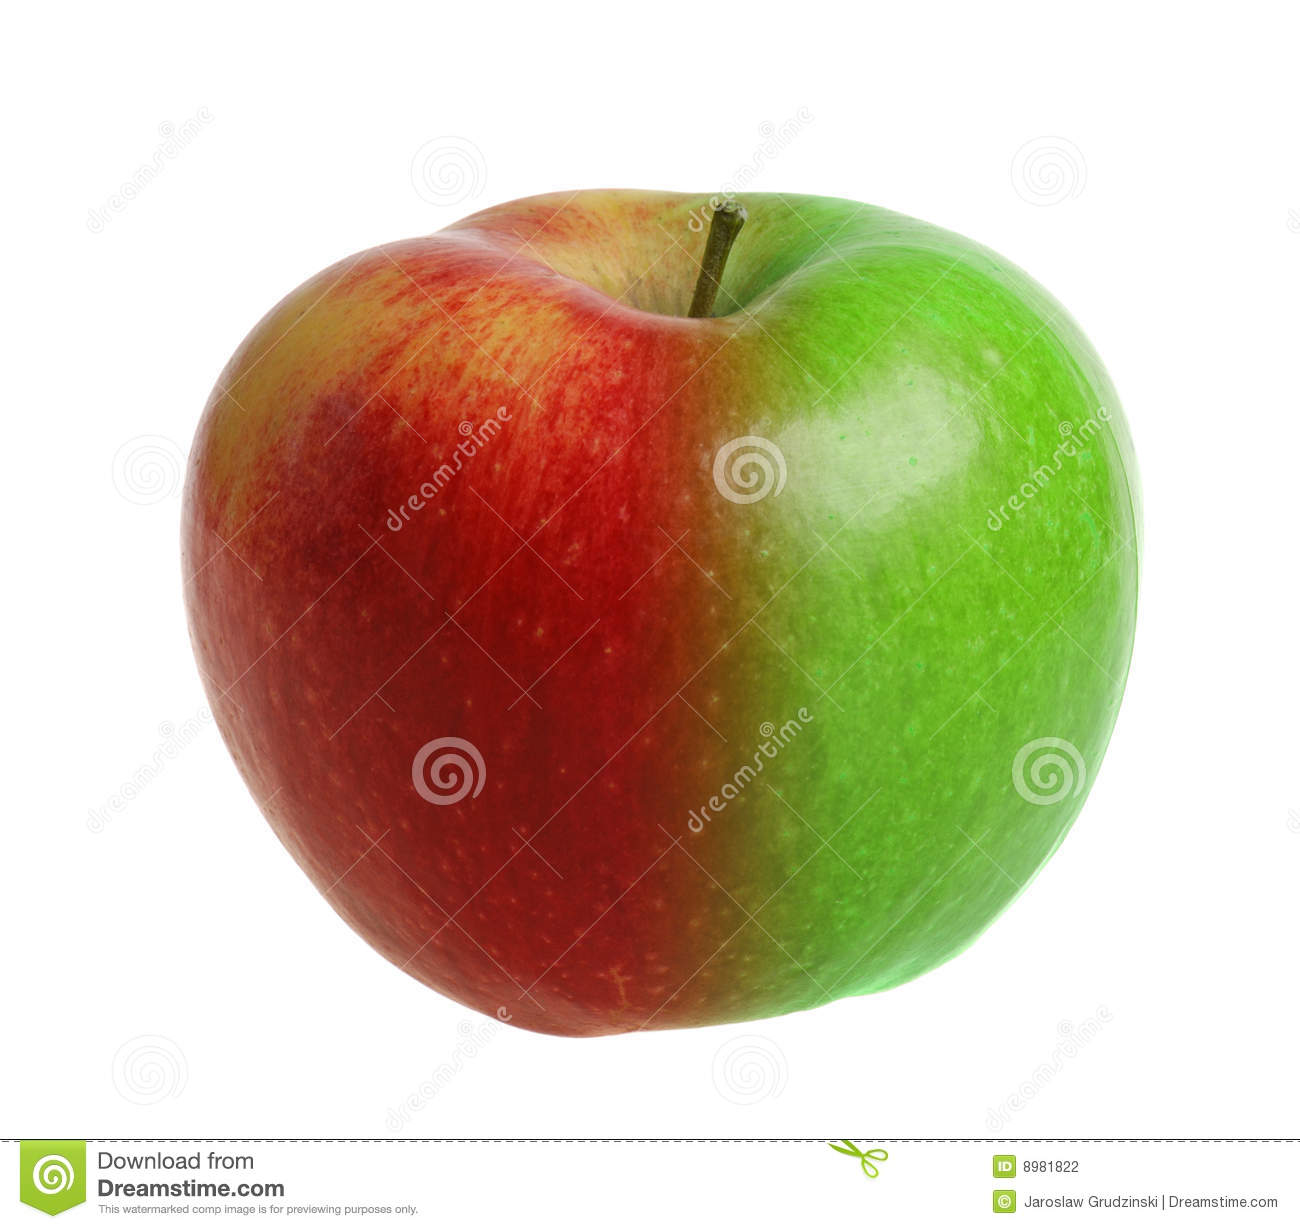 green and red apples. royalty-free stock photo. download red and green apple apples